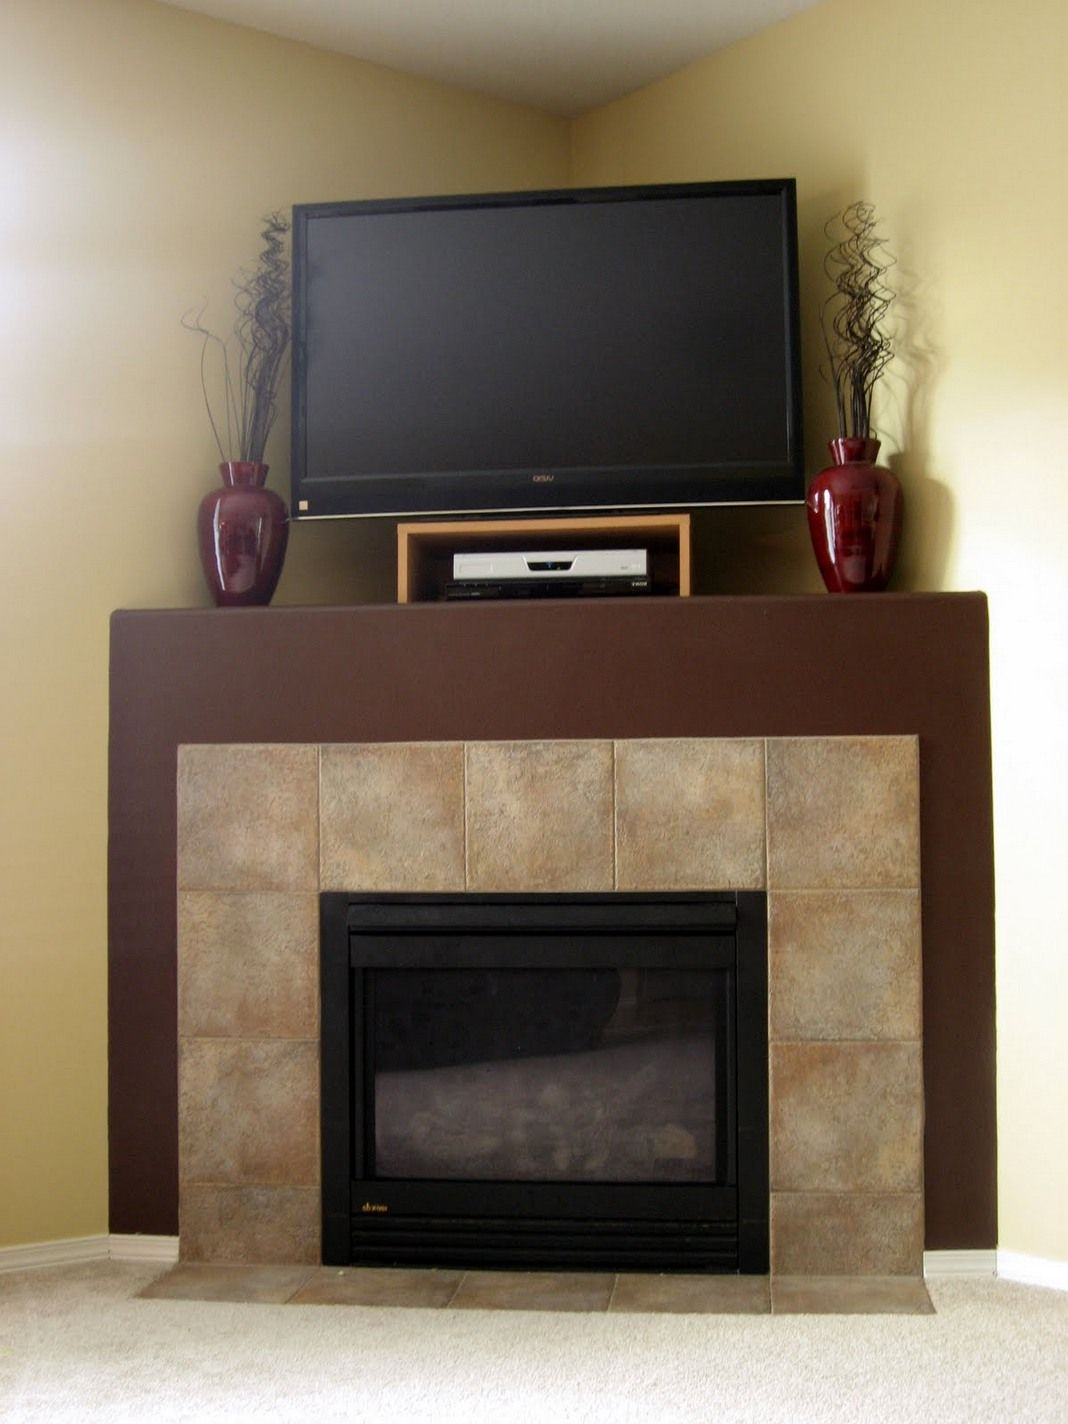 Tv Above Corner Fireplace Big Slate Tile Faced